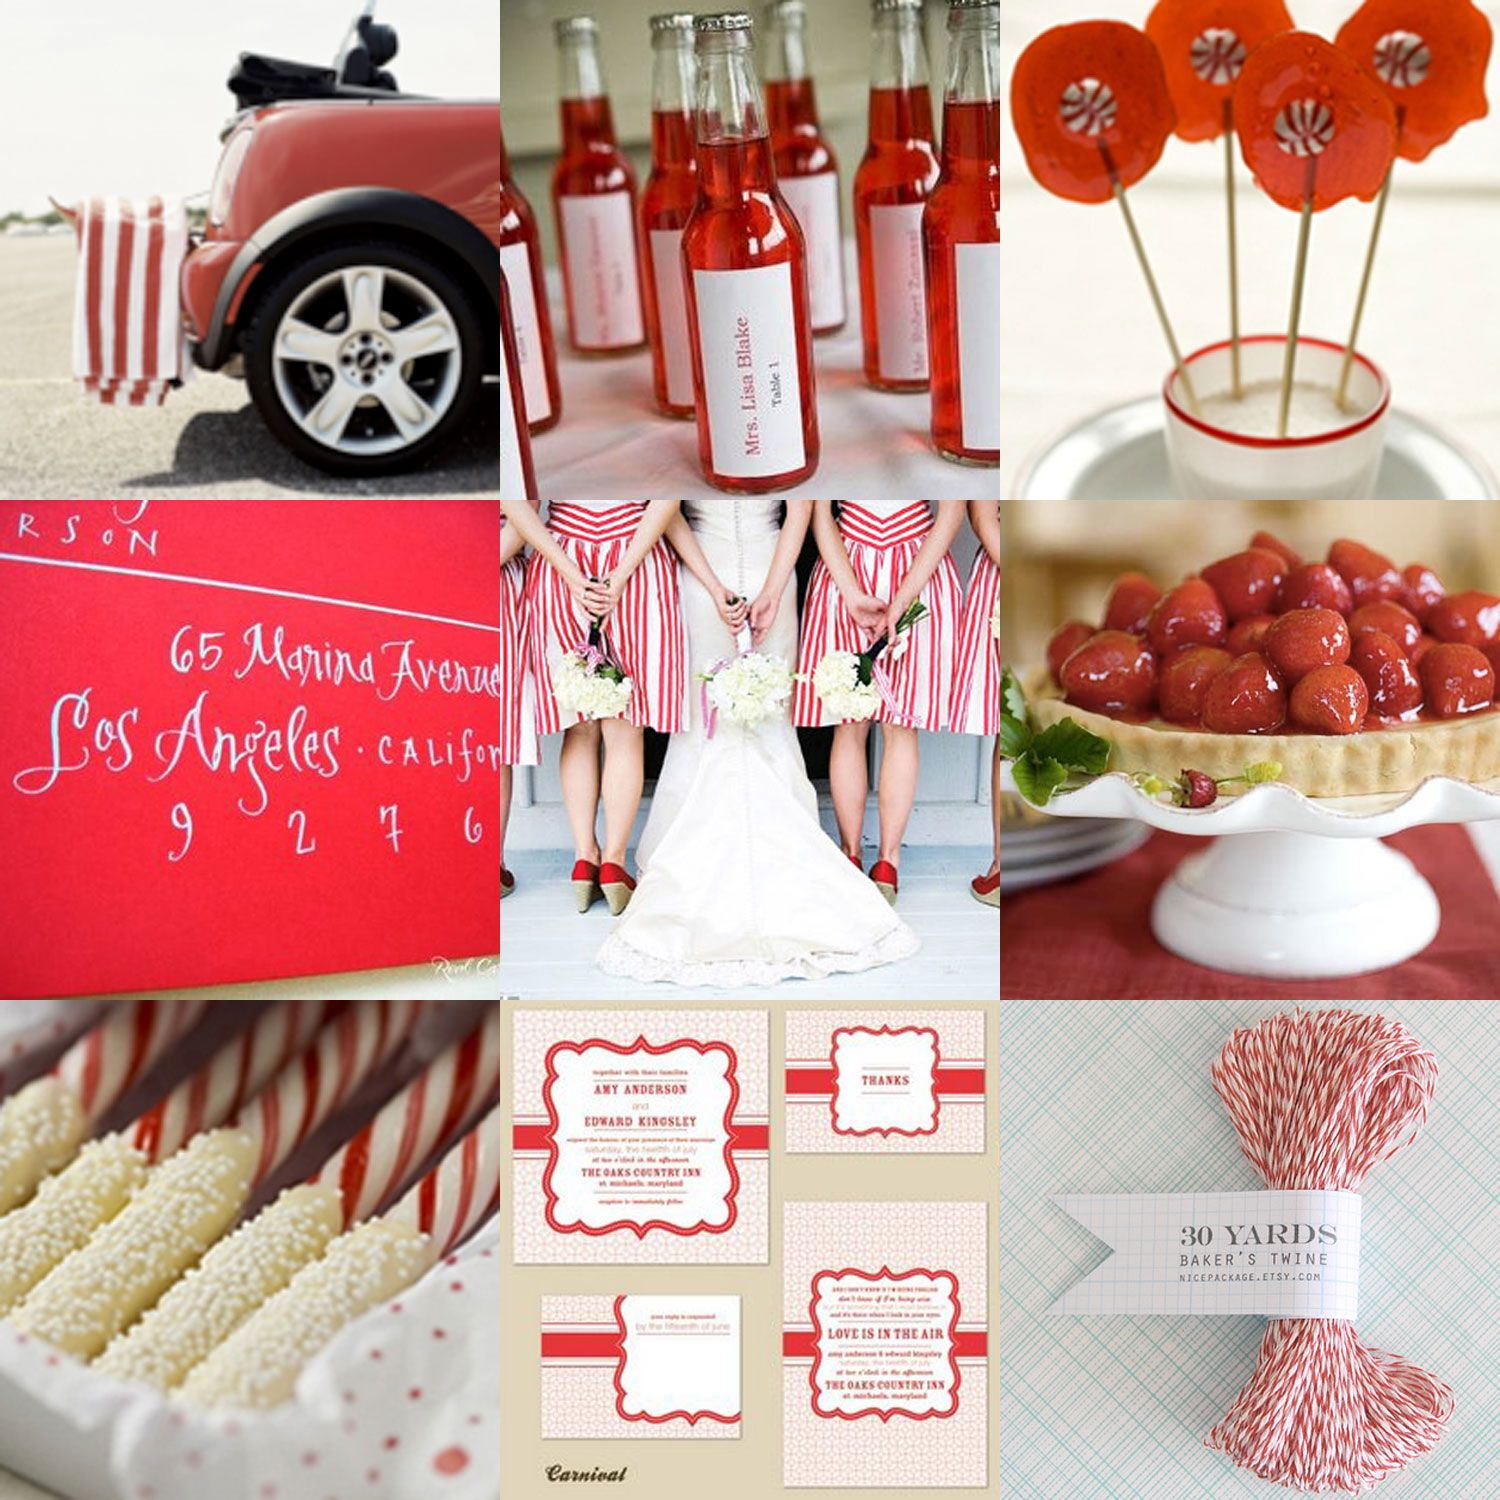 For A Bold, Fun Valentine's Wedding